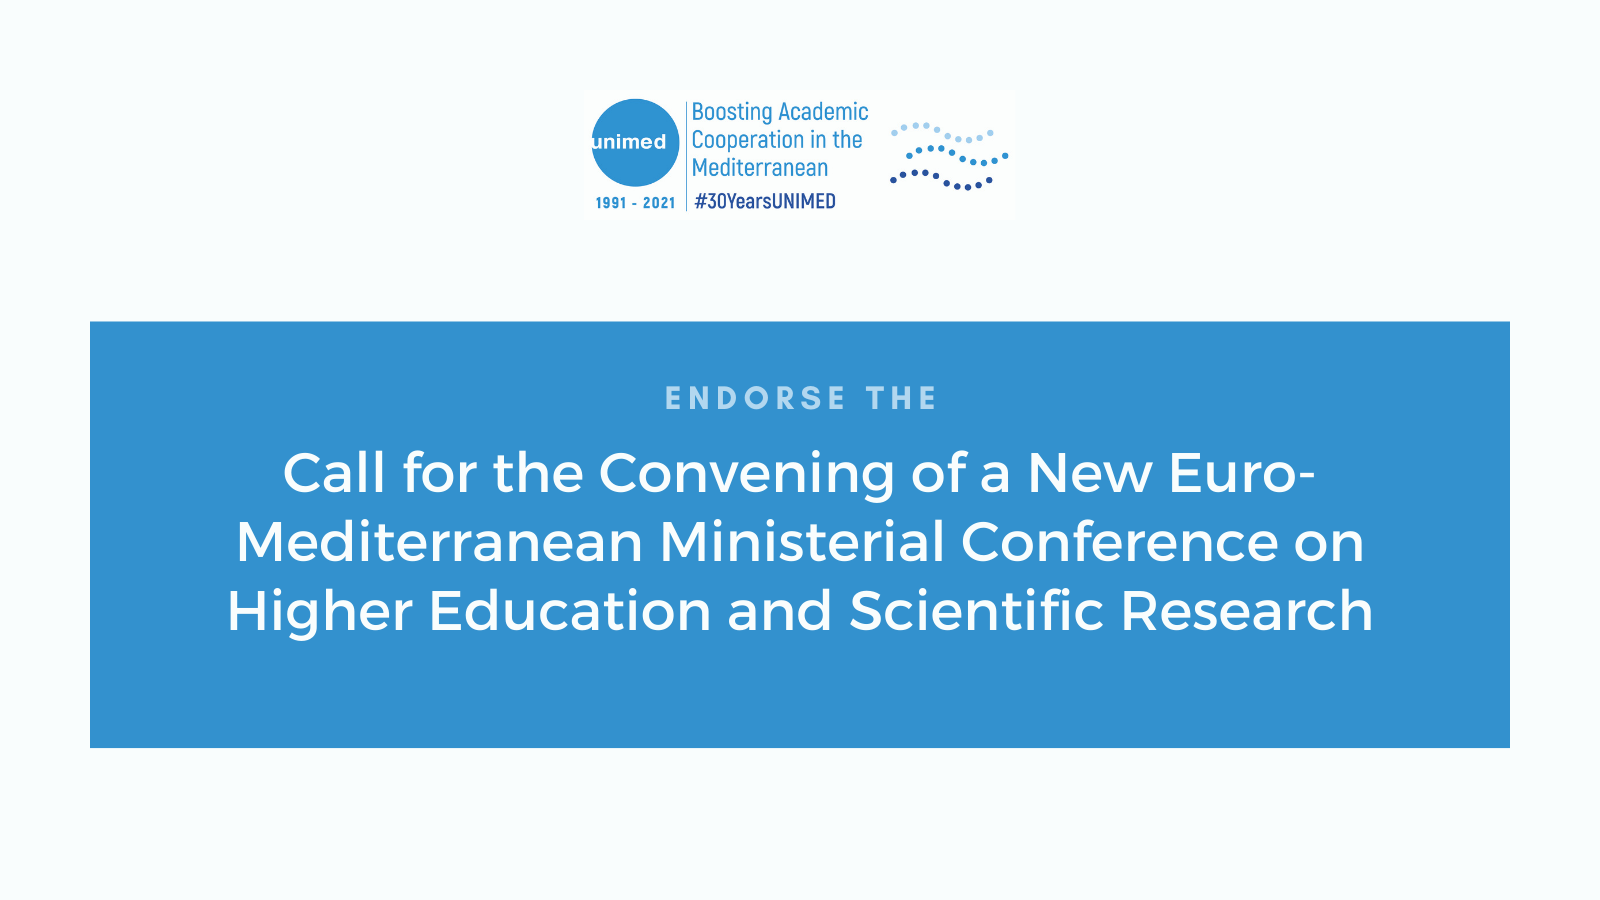 Call for the Convening of a New Euro-Mediterranean Ministerial Conference on Higher Education and Scientific Research